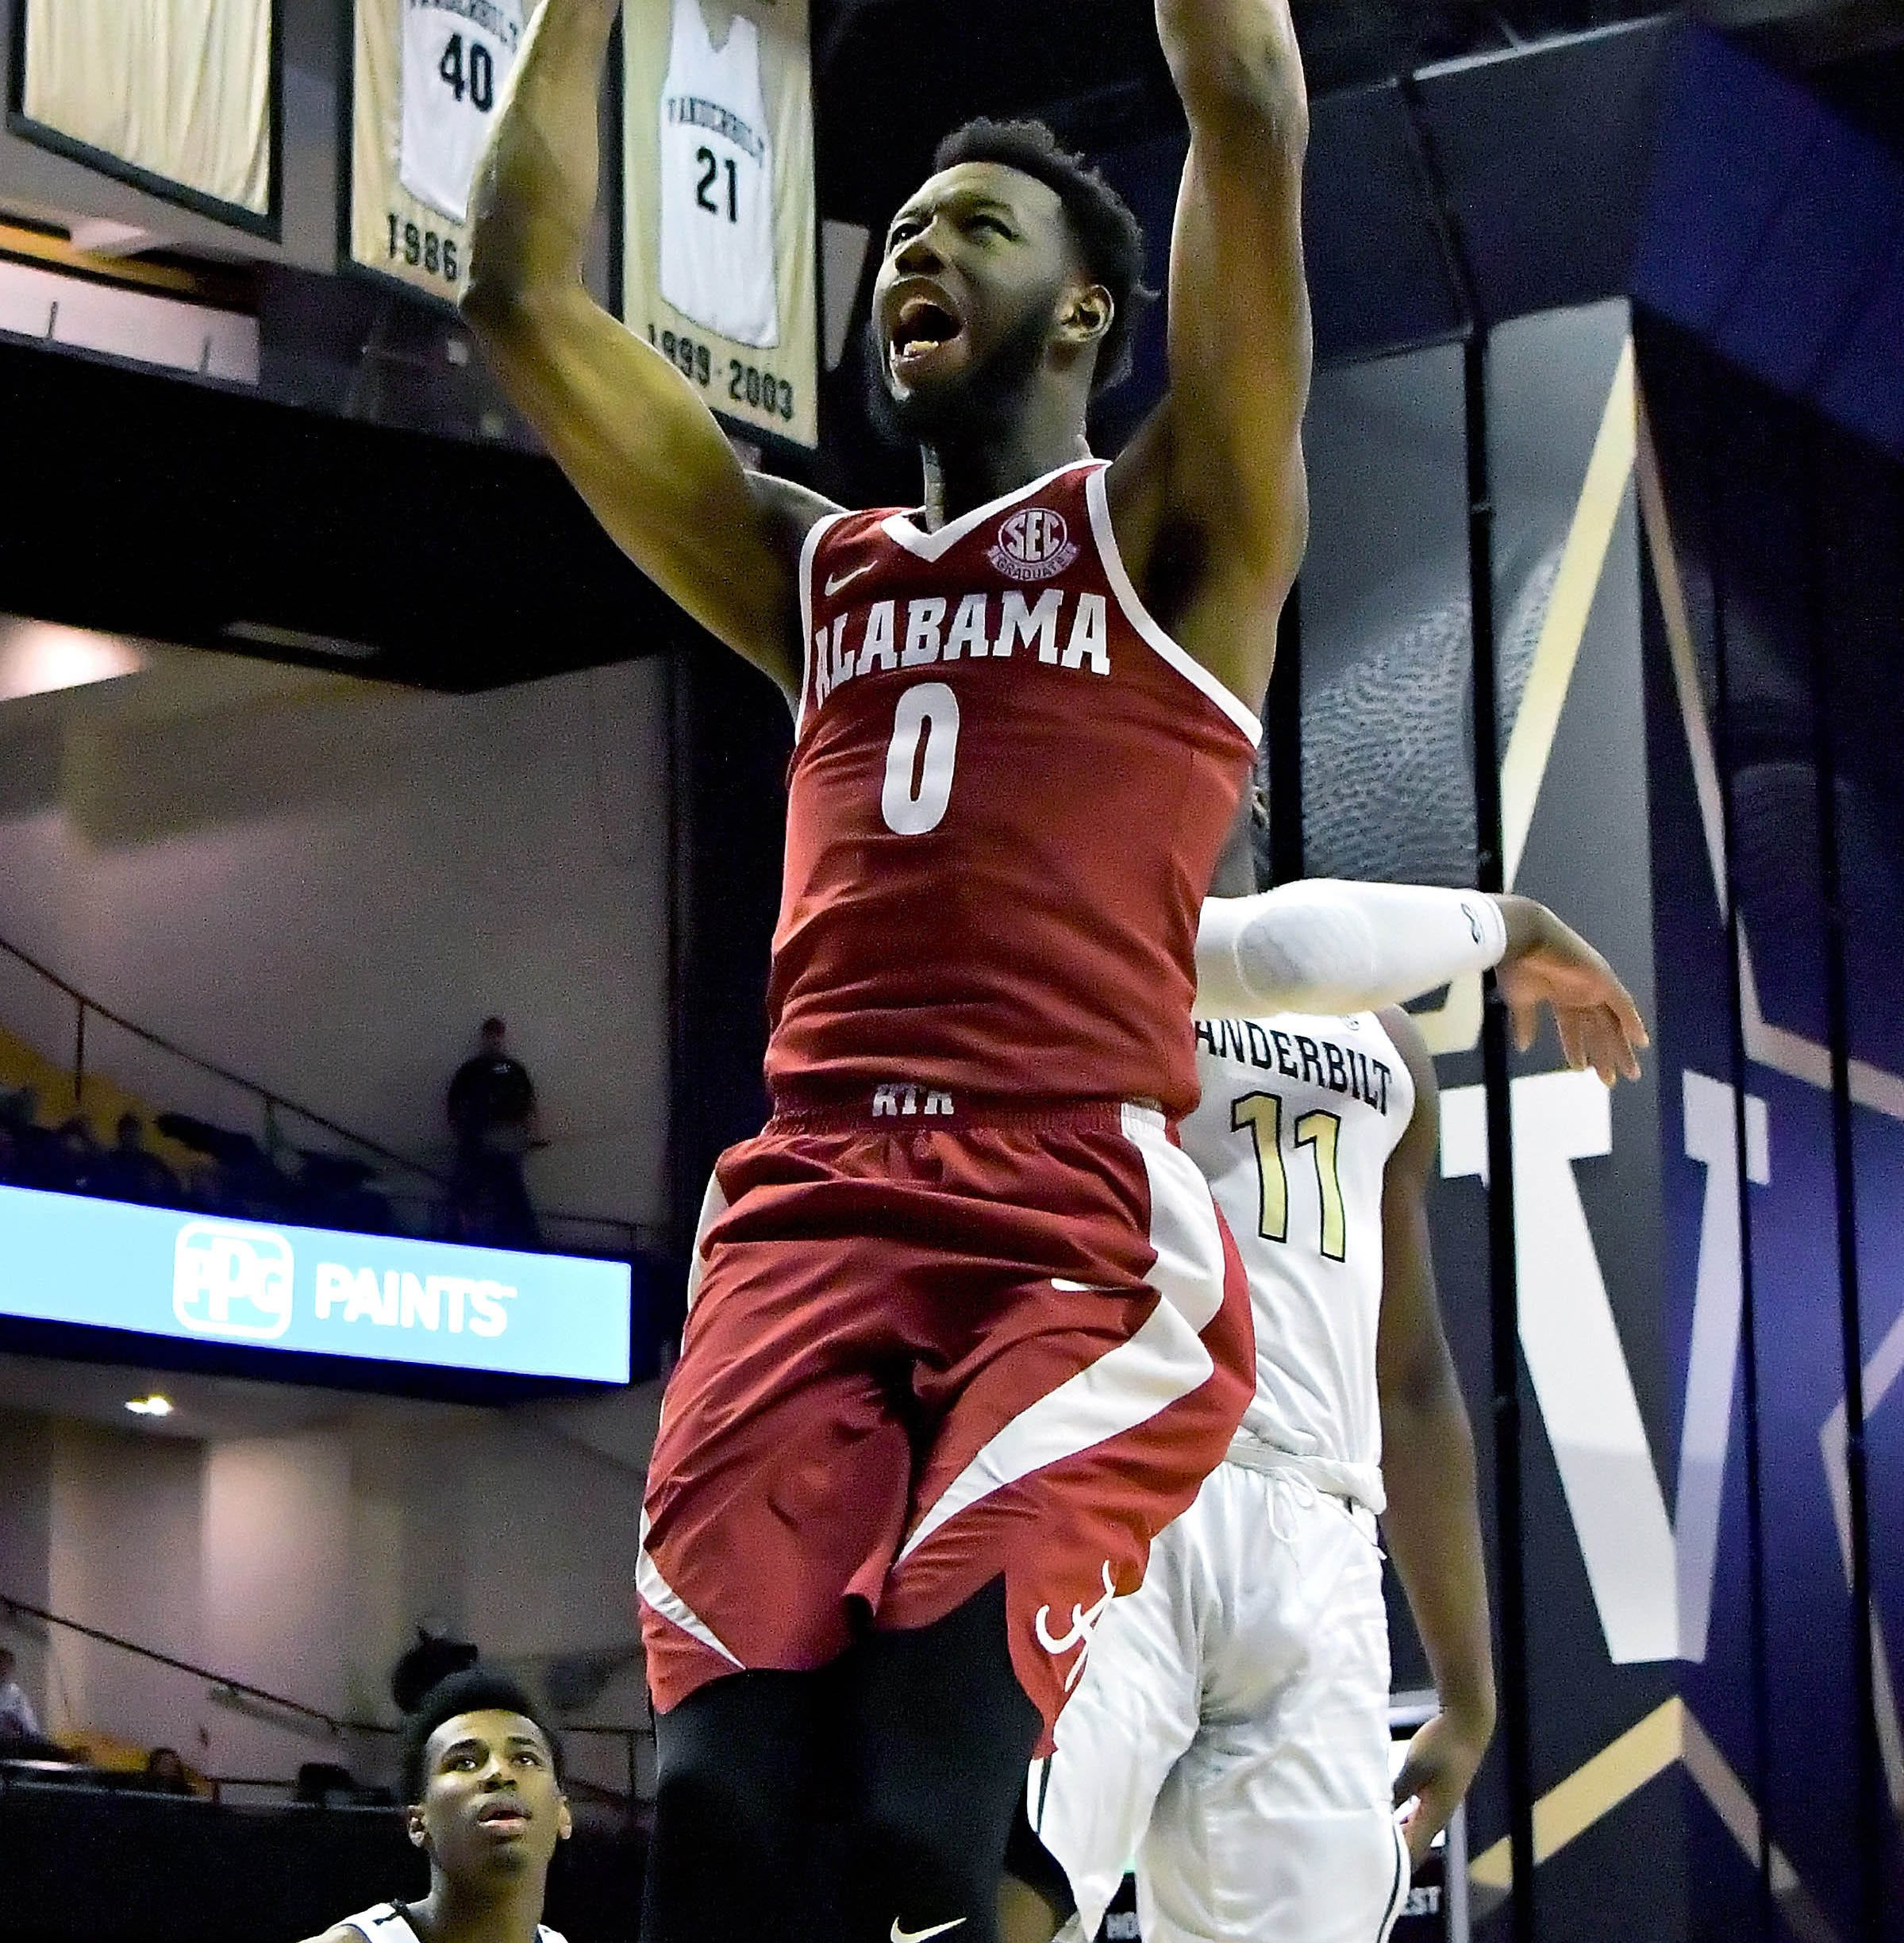 No sweat: Alabama's Donta Hall confident Tide can secure another Tournament bid in Nashville